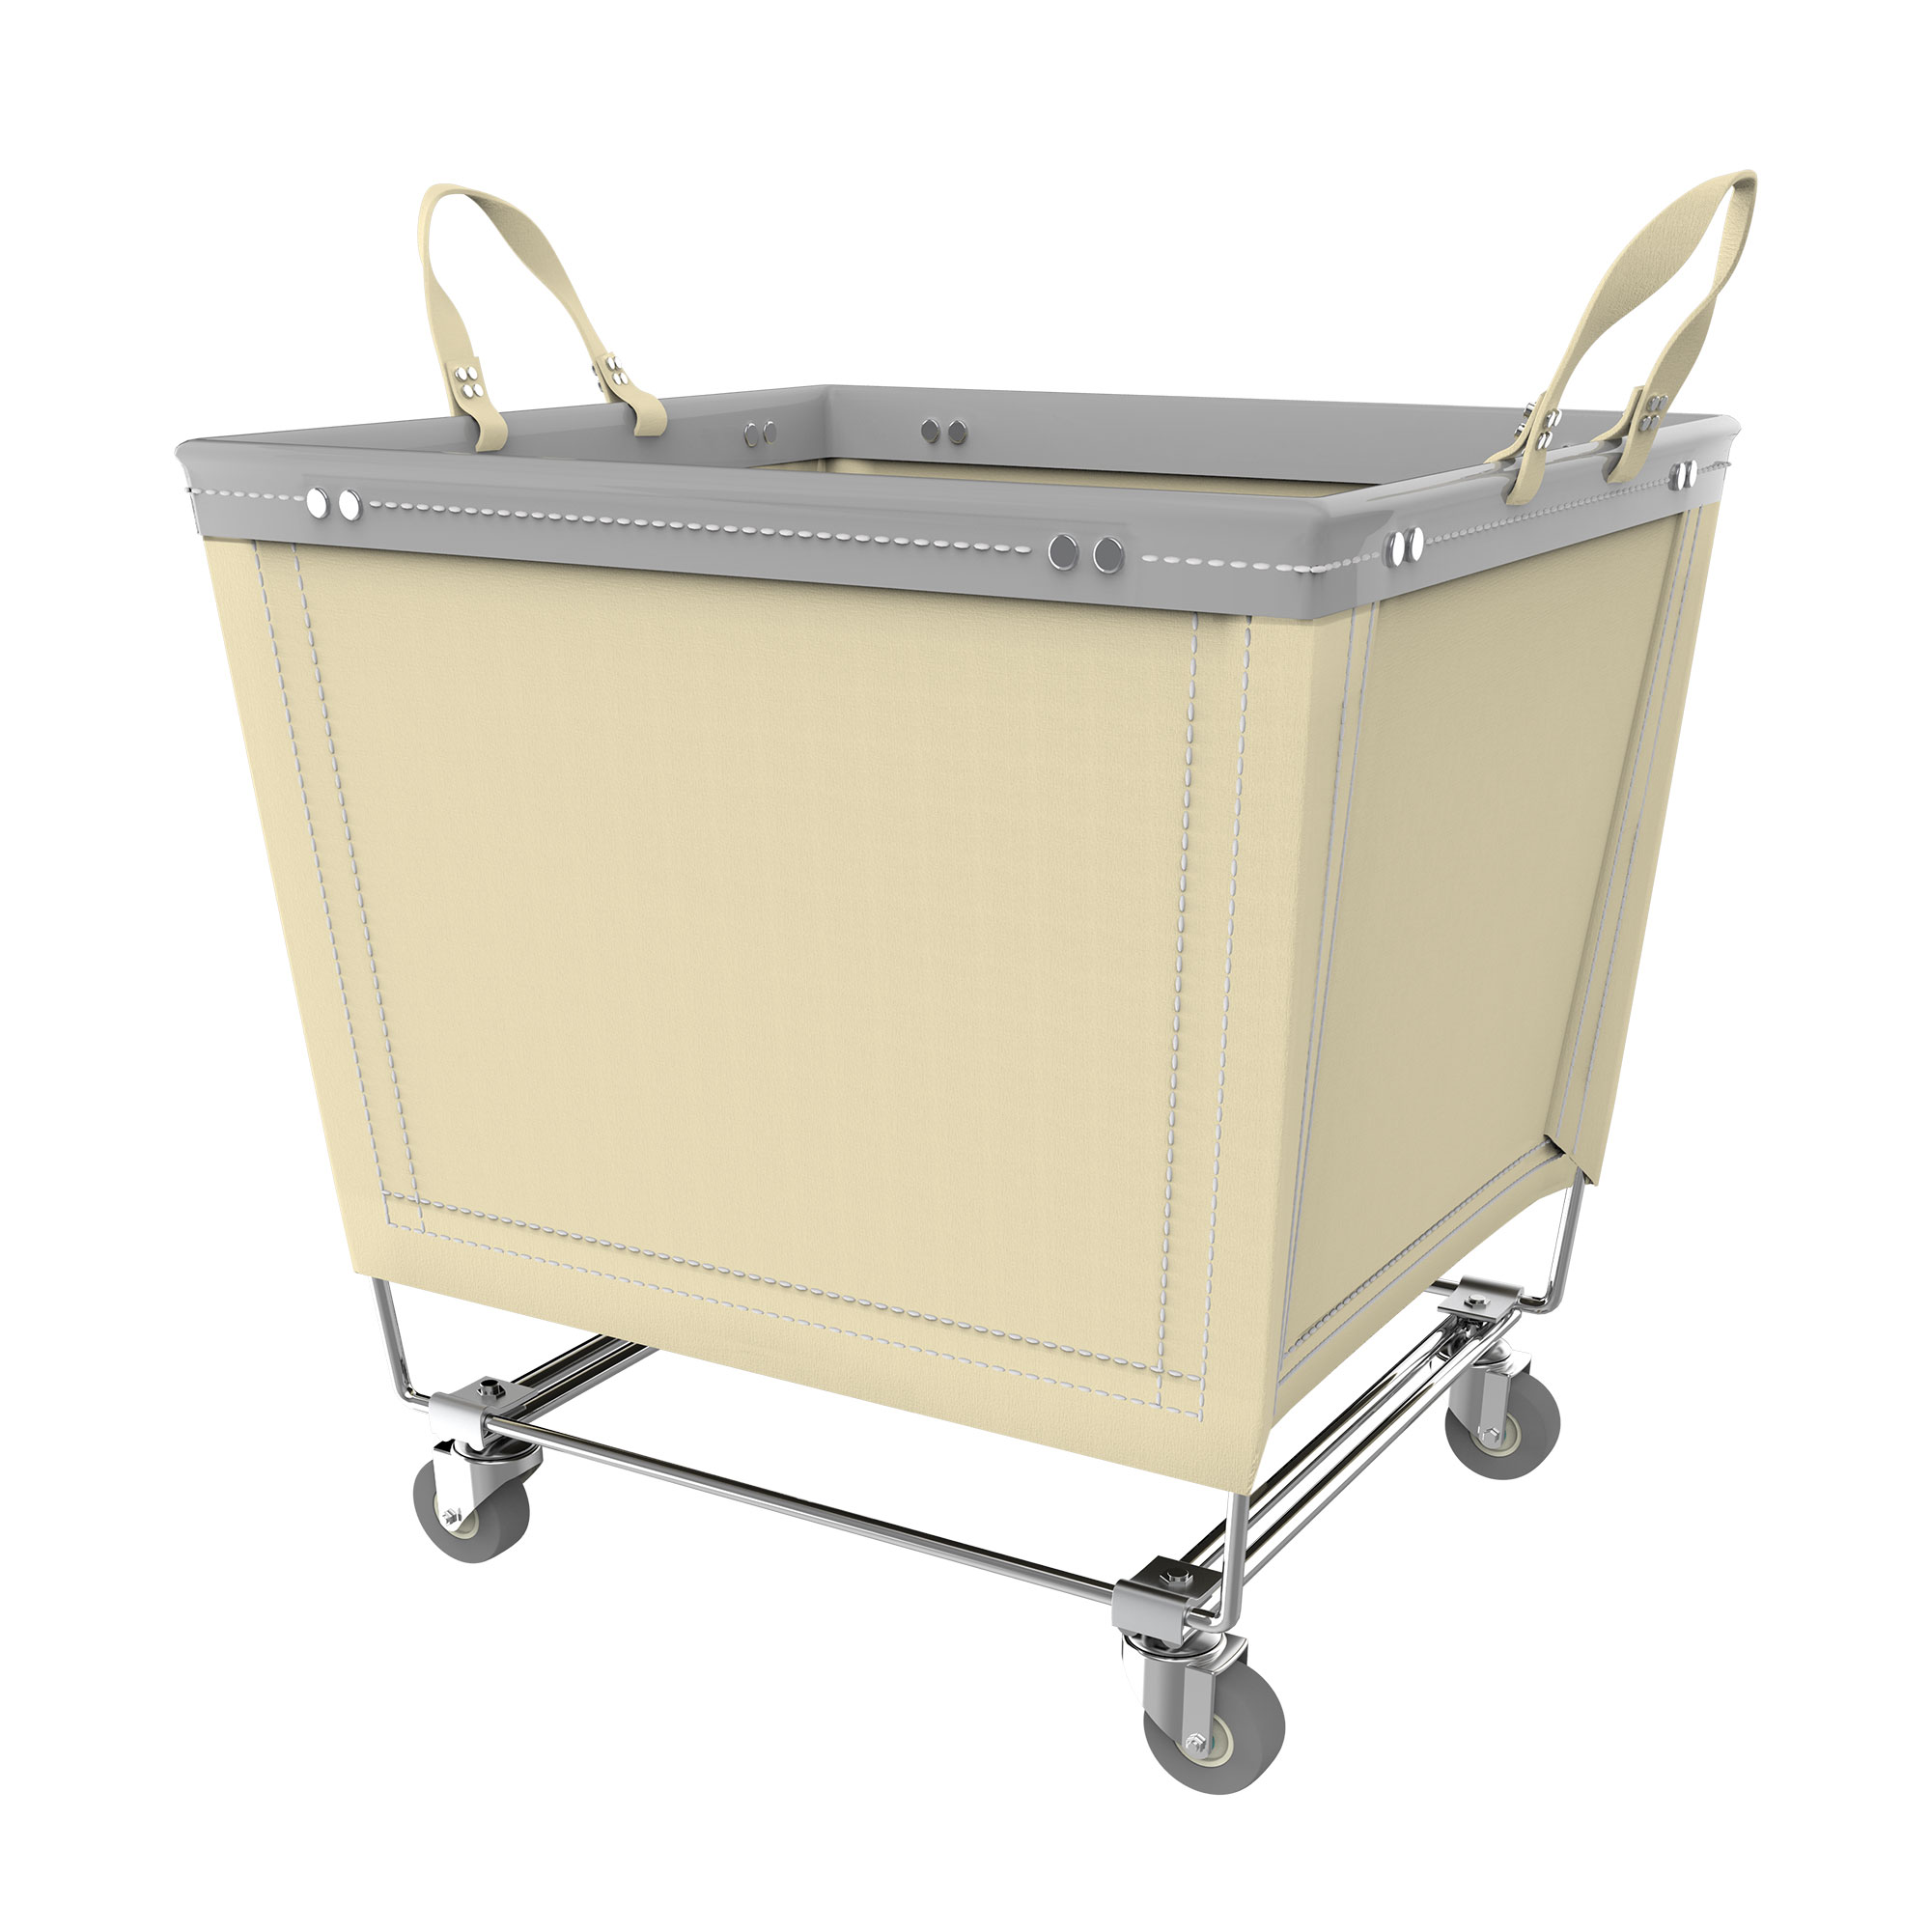 laundry cart on wheels laundry cart laundry hamper laundry basket venace 10536